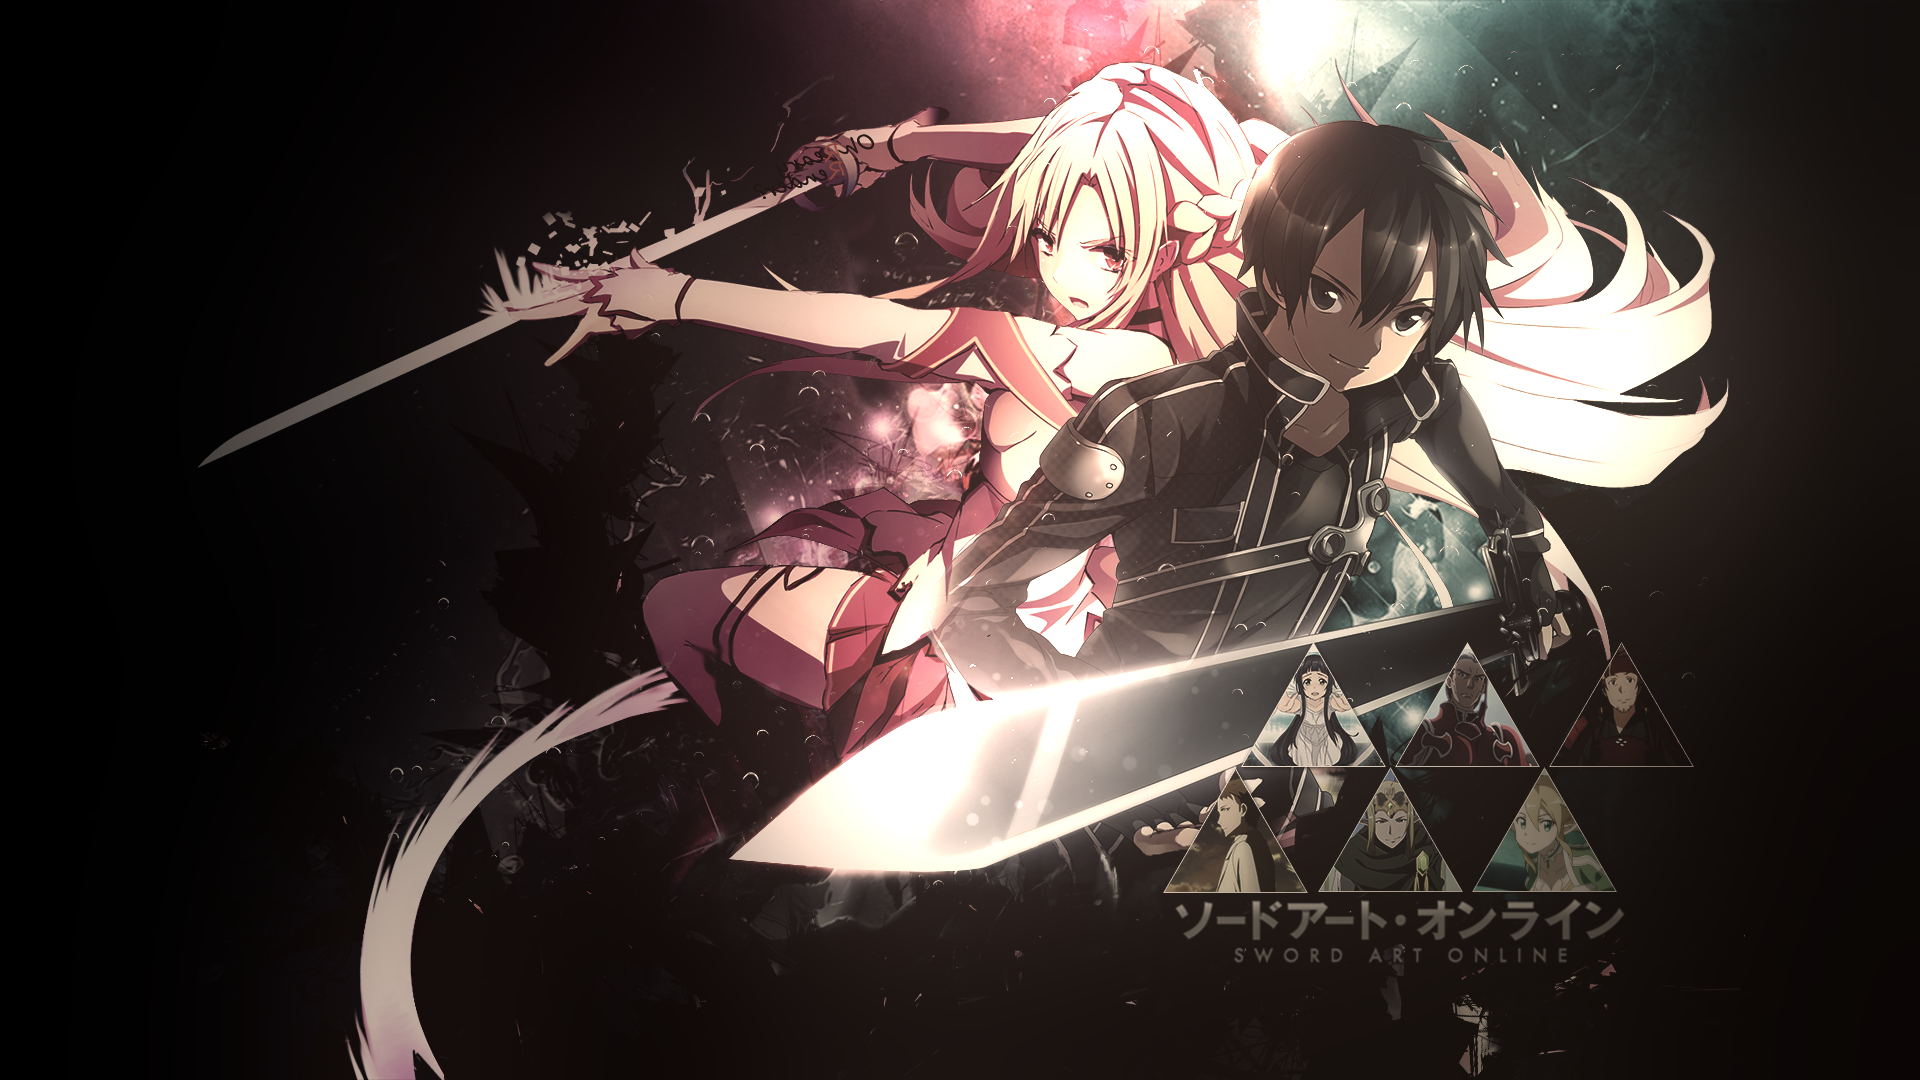 Sword Art Online Season 2 20 Free Hd Wallpaper Animewp Com